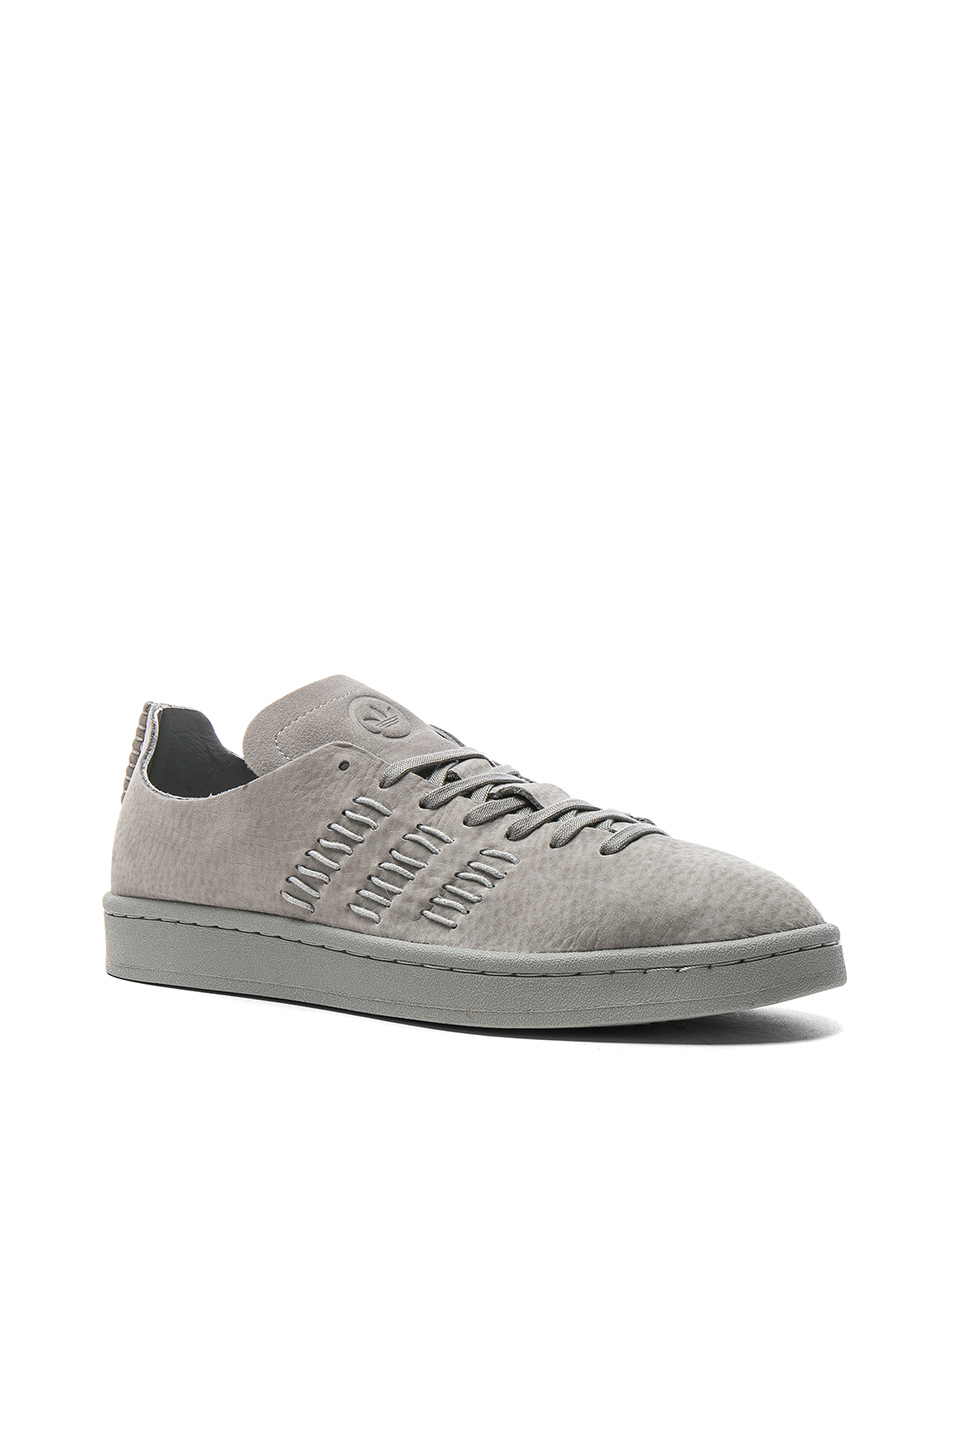 adidas by wings + horns Leather Campus Sneakers in Gray